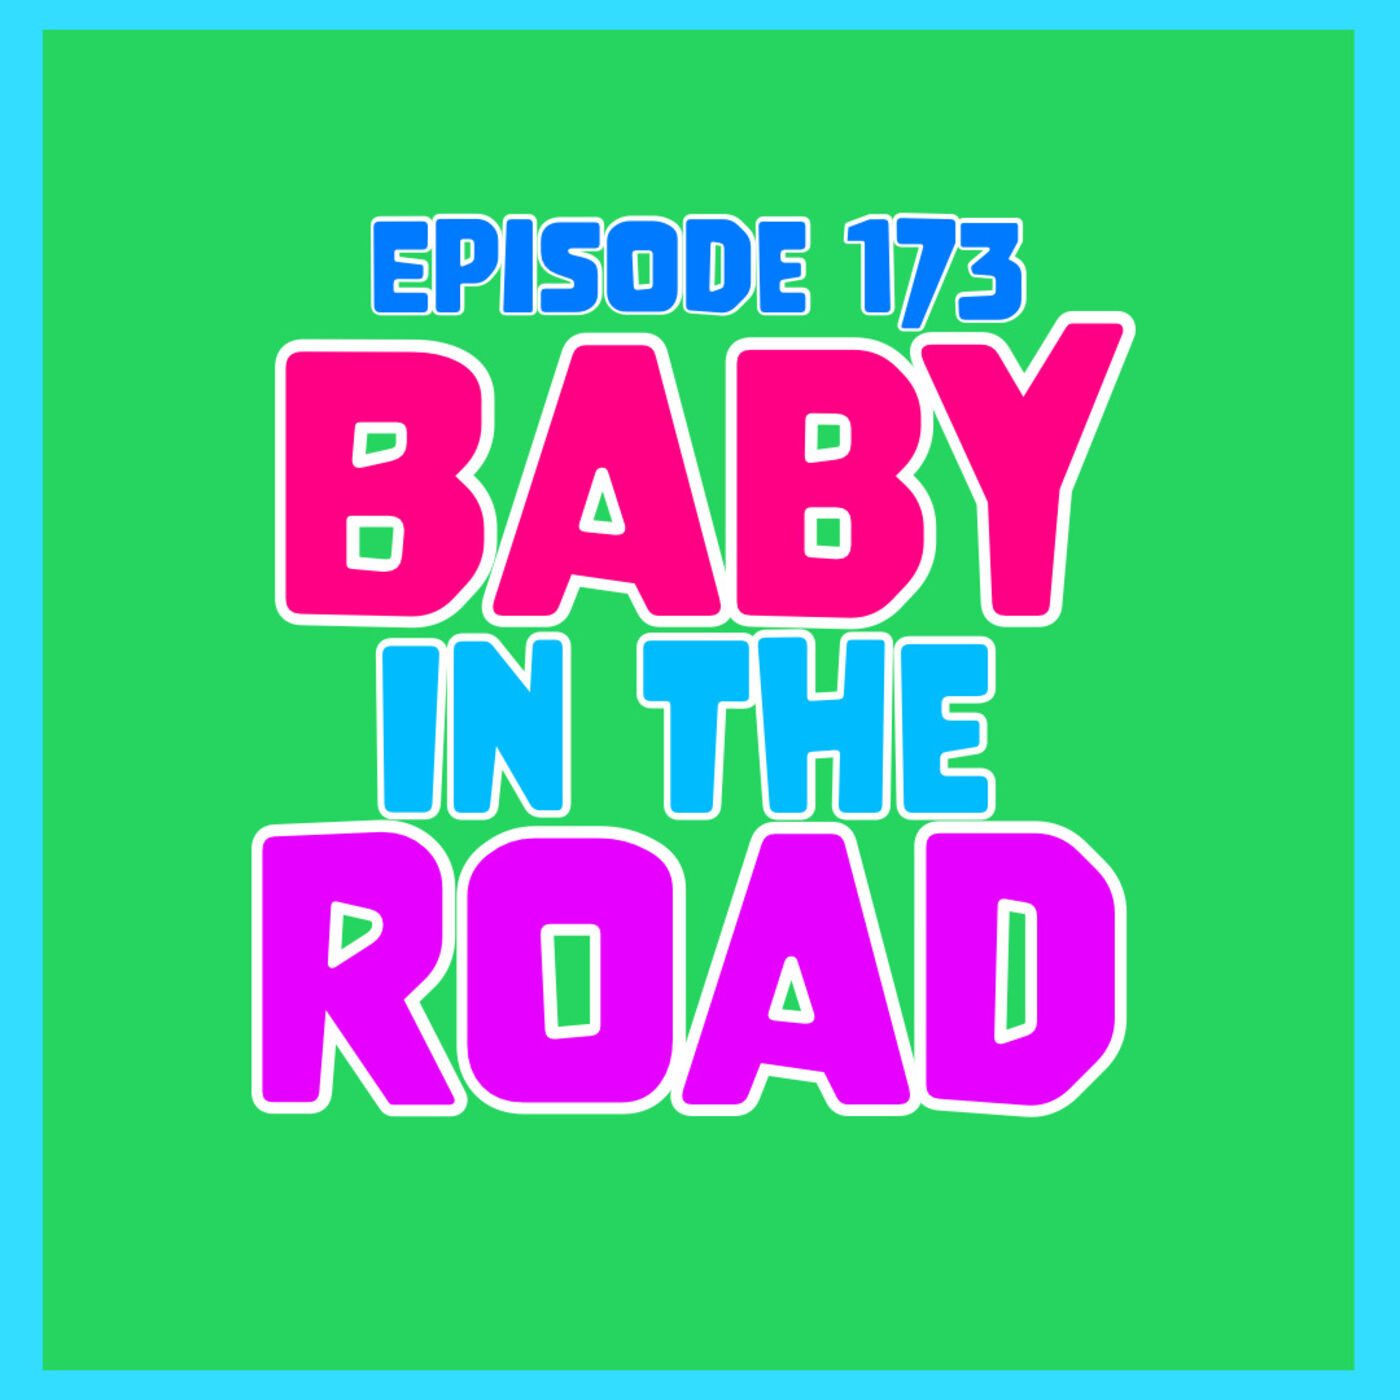 Episode 173: Baby in the road